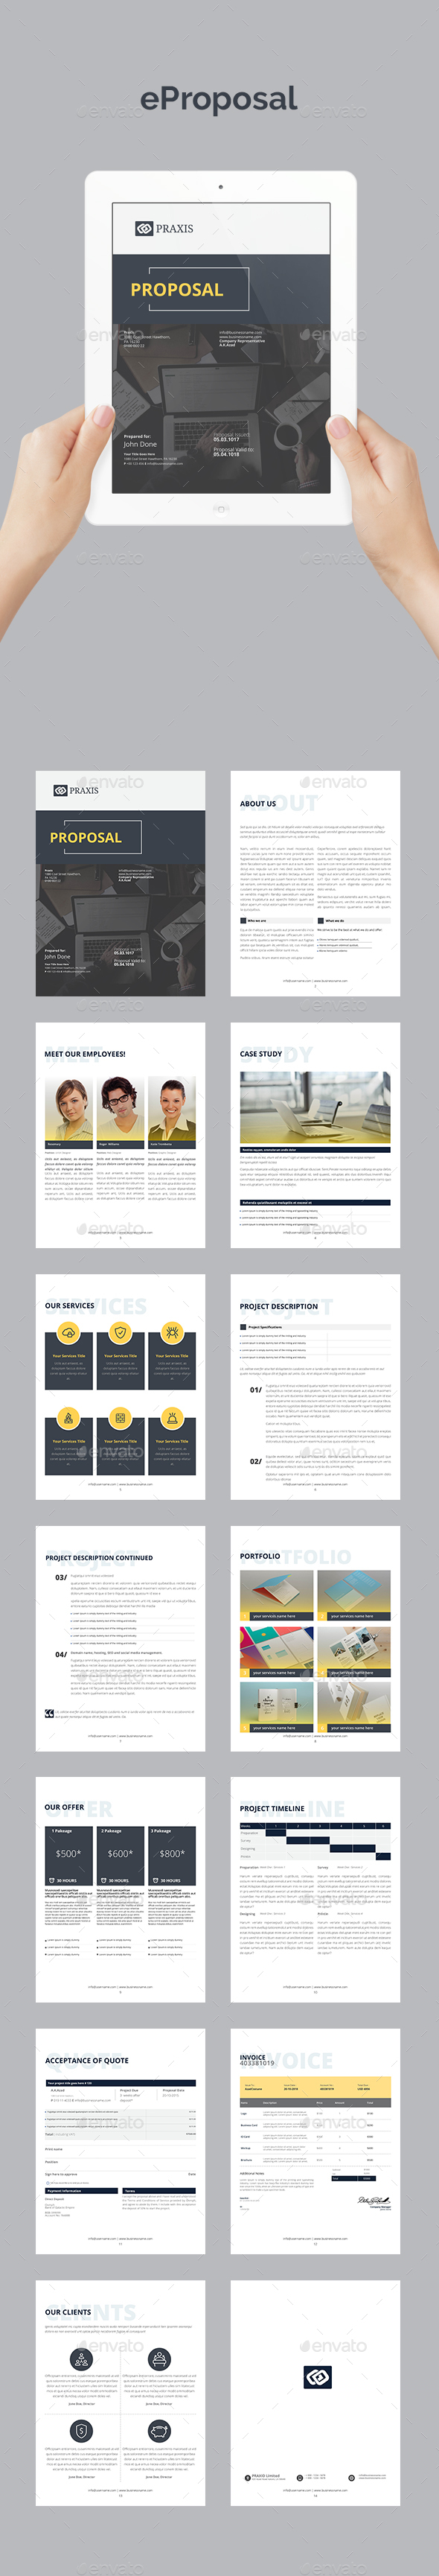 GraphicRiver eProposal 20758292